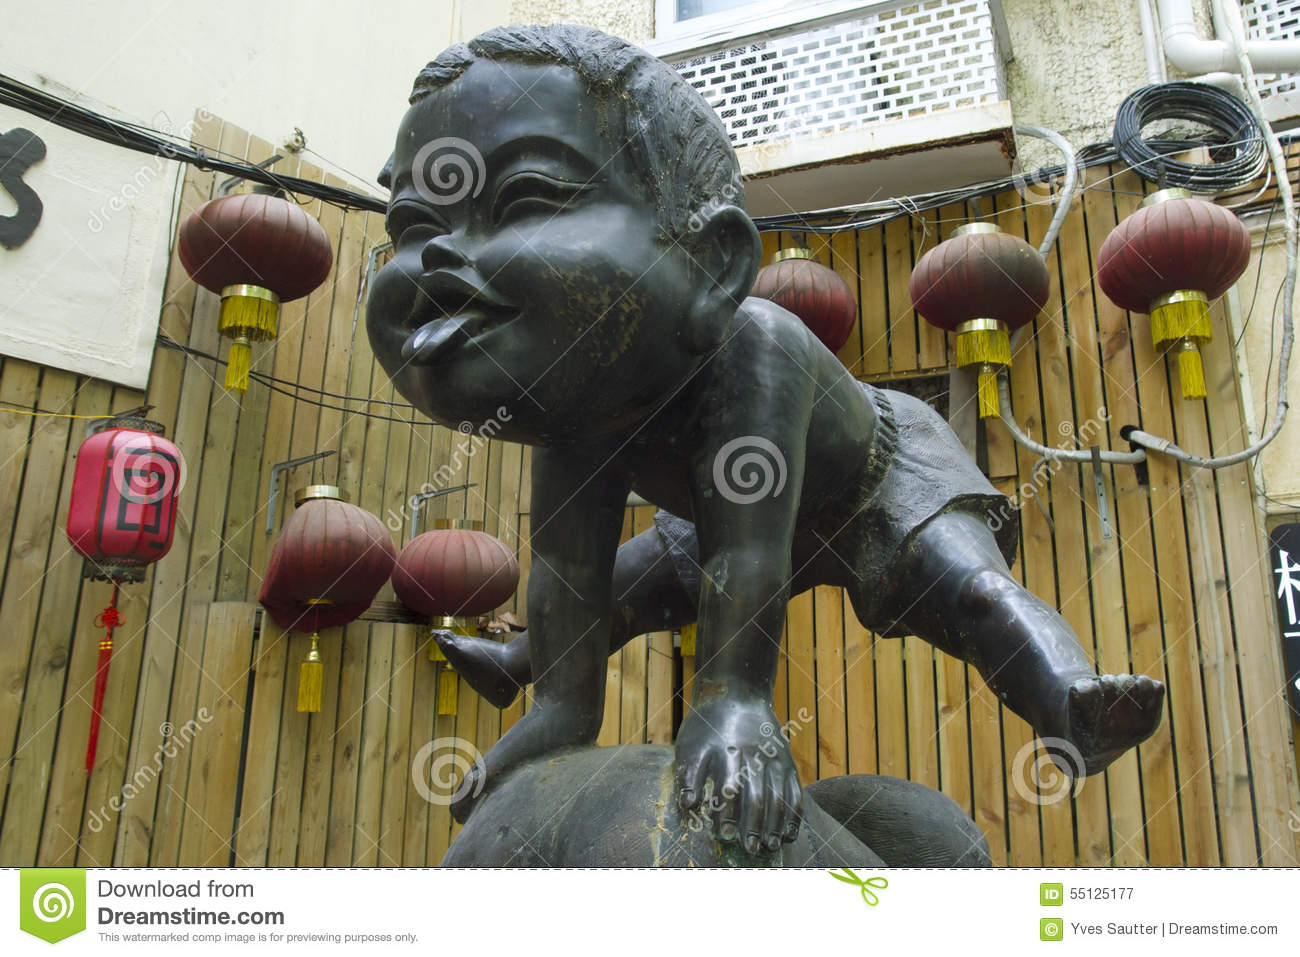 Landmark Little Happy Playing Boy Sculpture of the French Concession in Central Shanghai, China